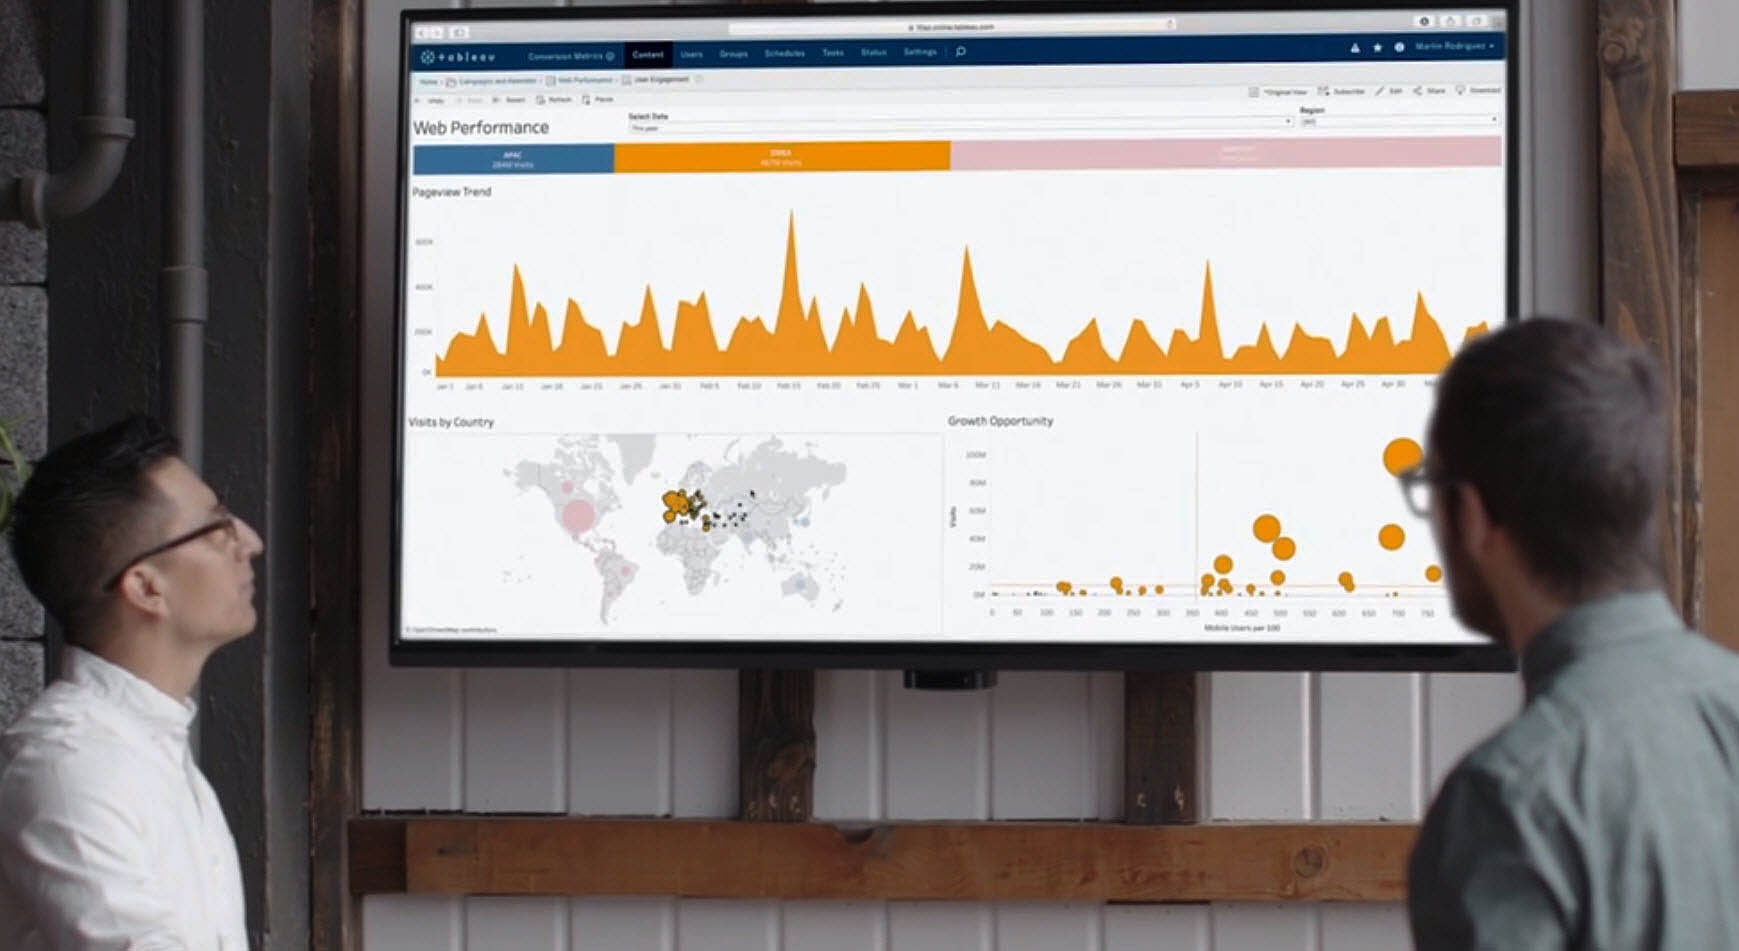 Tableau dashboard shared across the office - even better, make this screen interactive to really dig into real-time data